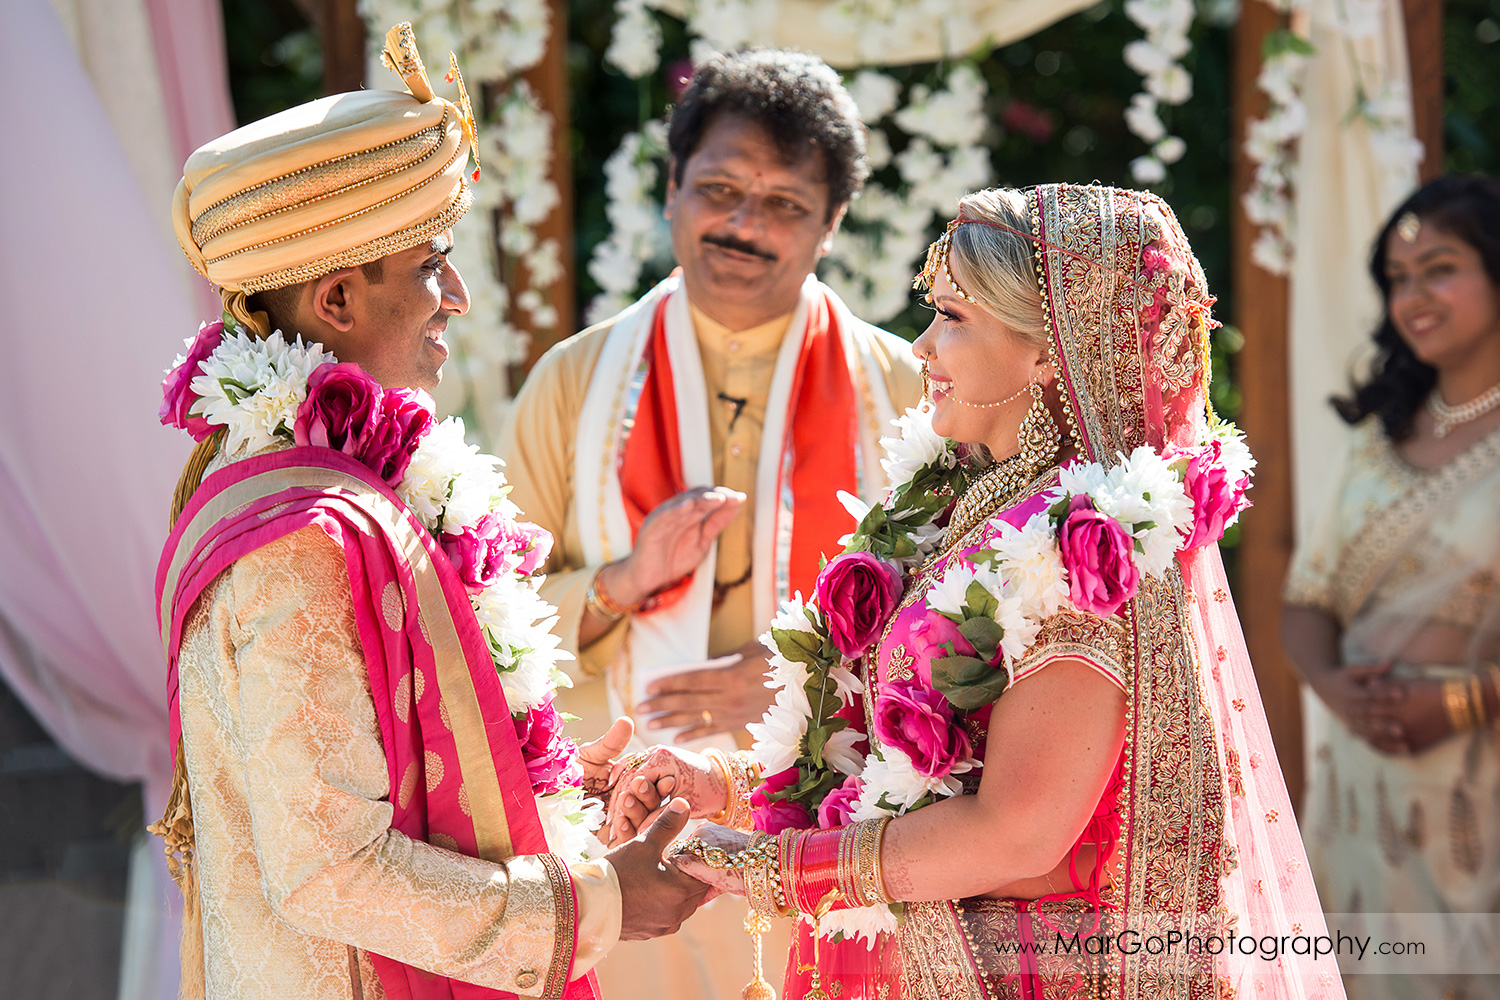 bride and groom holdinh hands for final blessing  Aashirwad during Indian wedding ceremony at Elliston Vineyards in Sunol